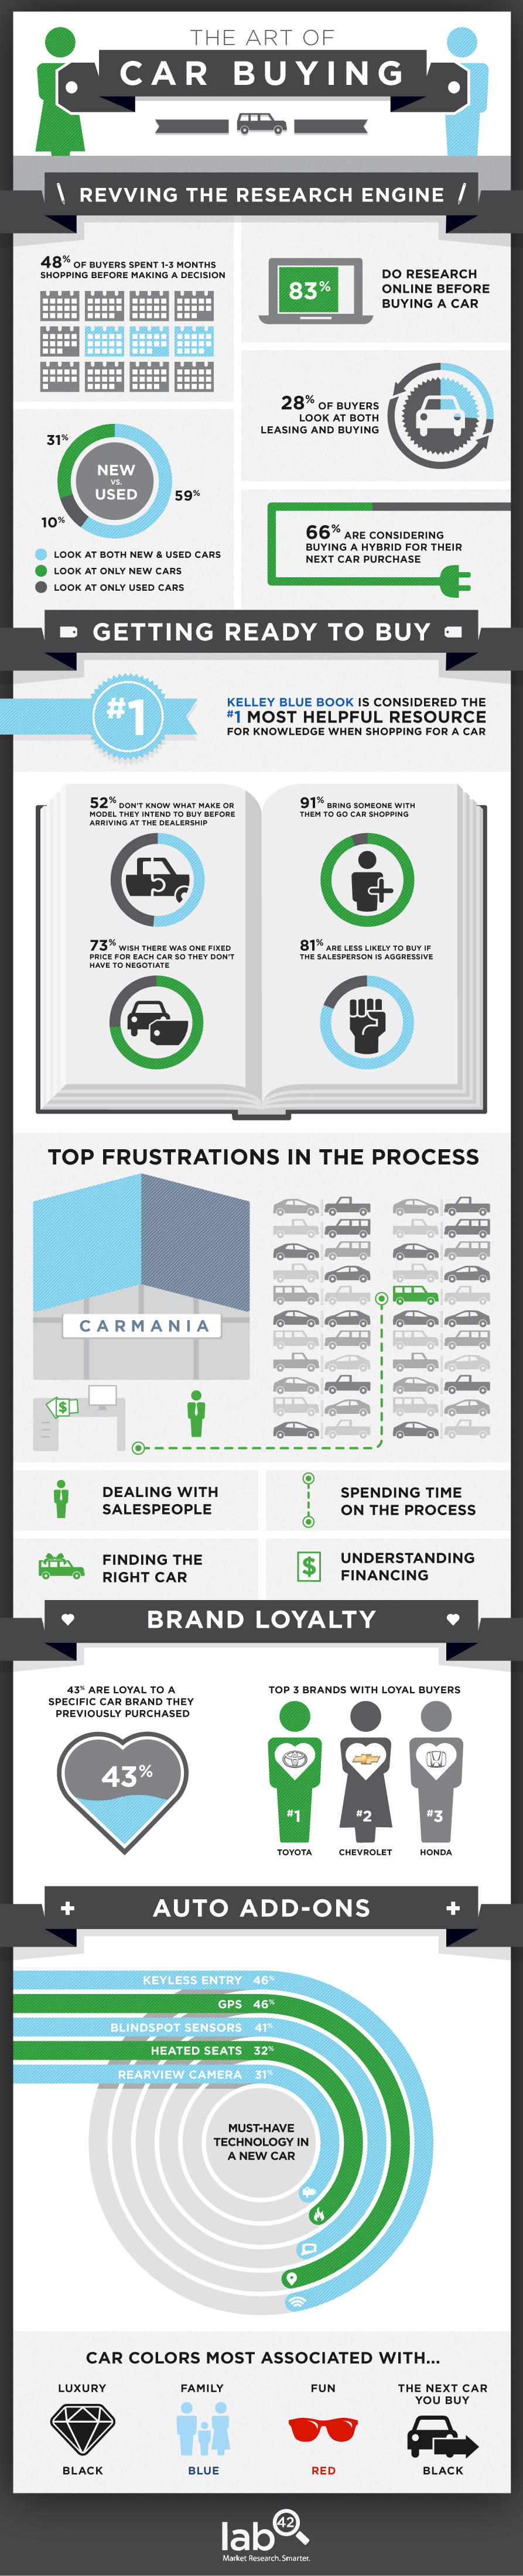 Lab42 Car Buying Infographic